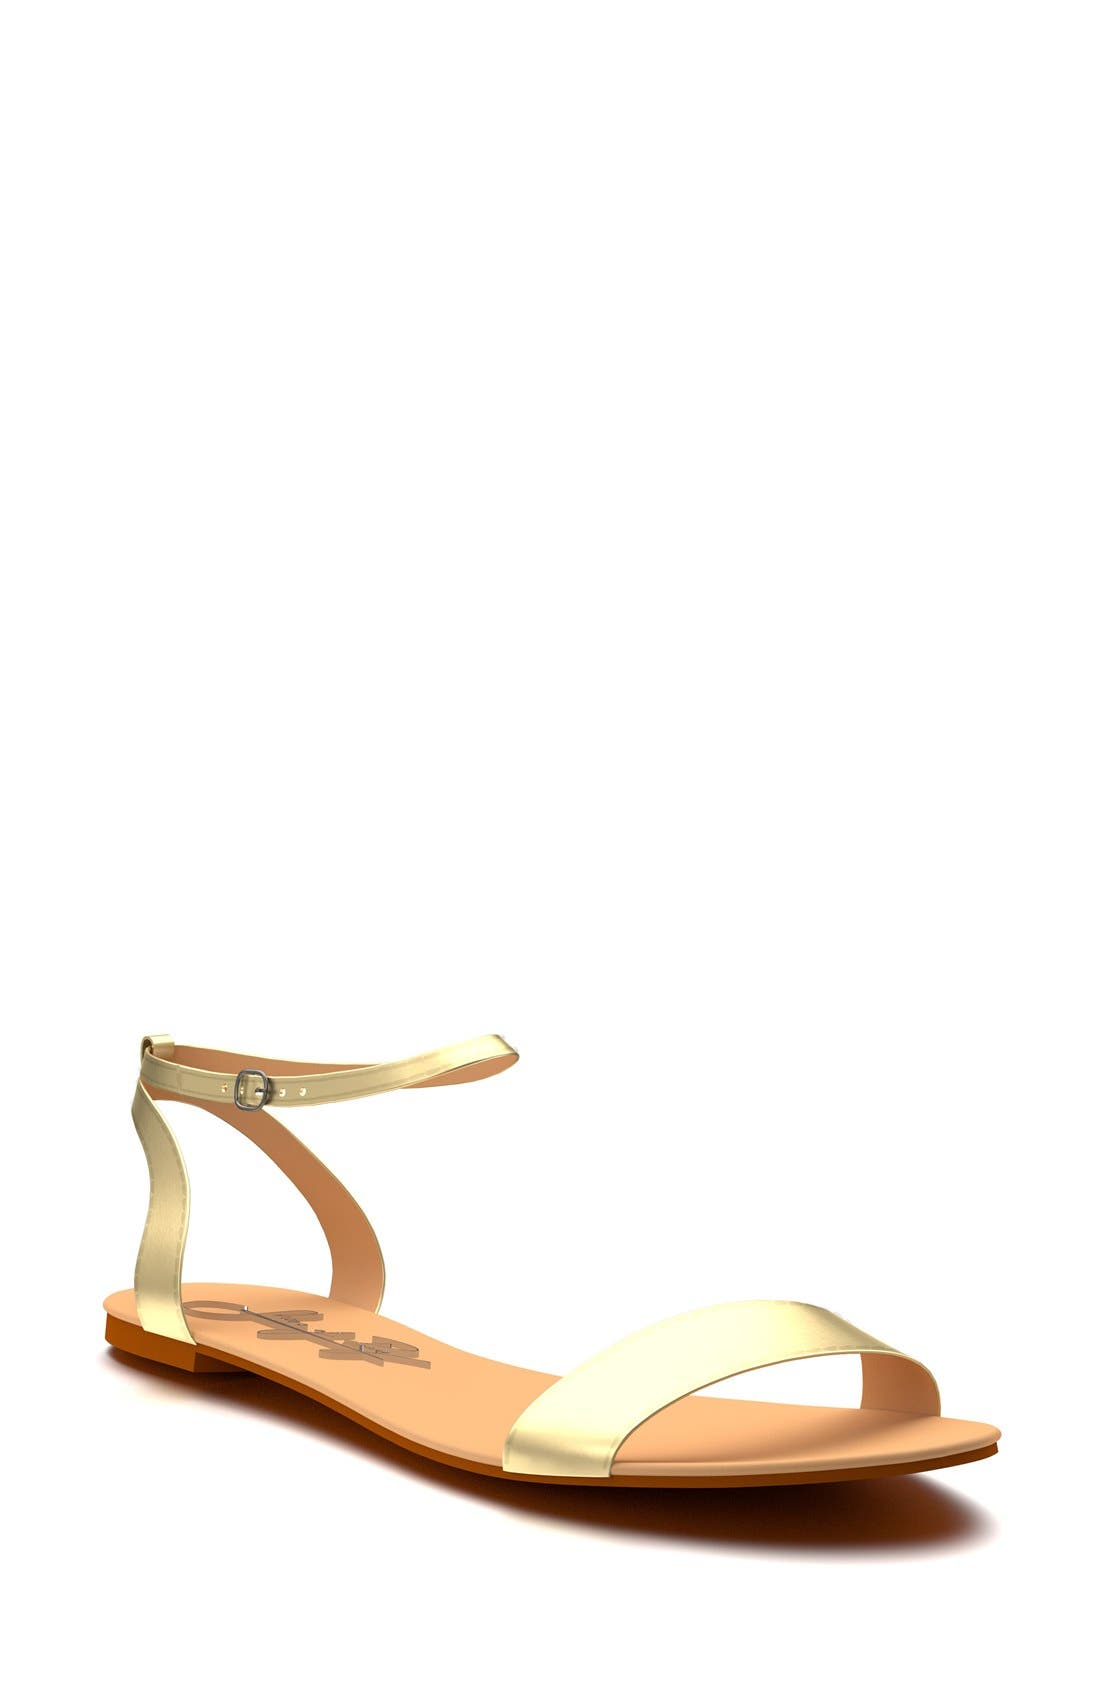 Metallic Ankle Strap Sandal,                             Main thumbnail 1, color,                             Gold Leather